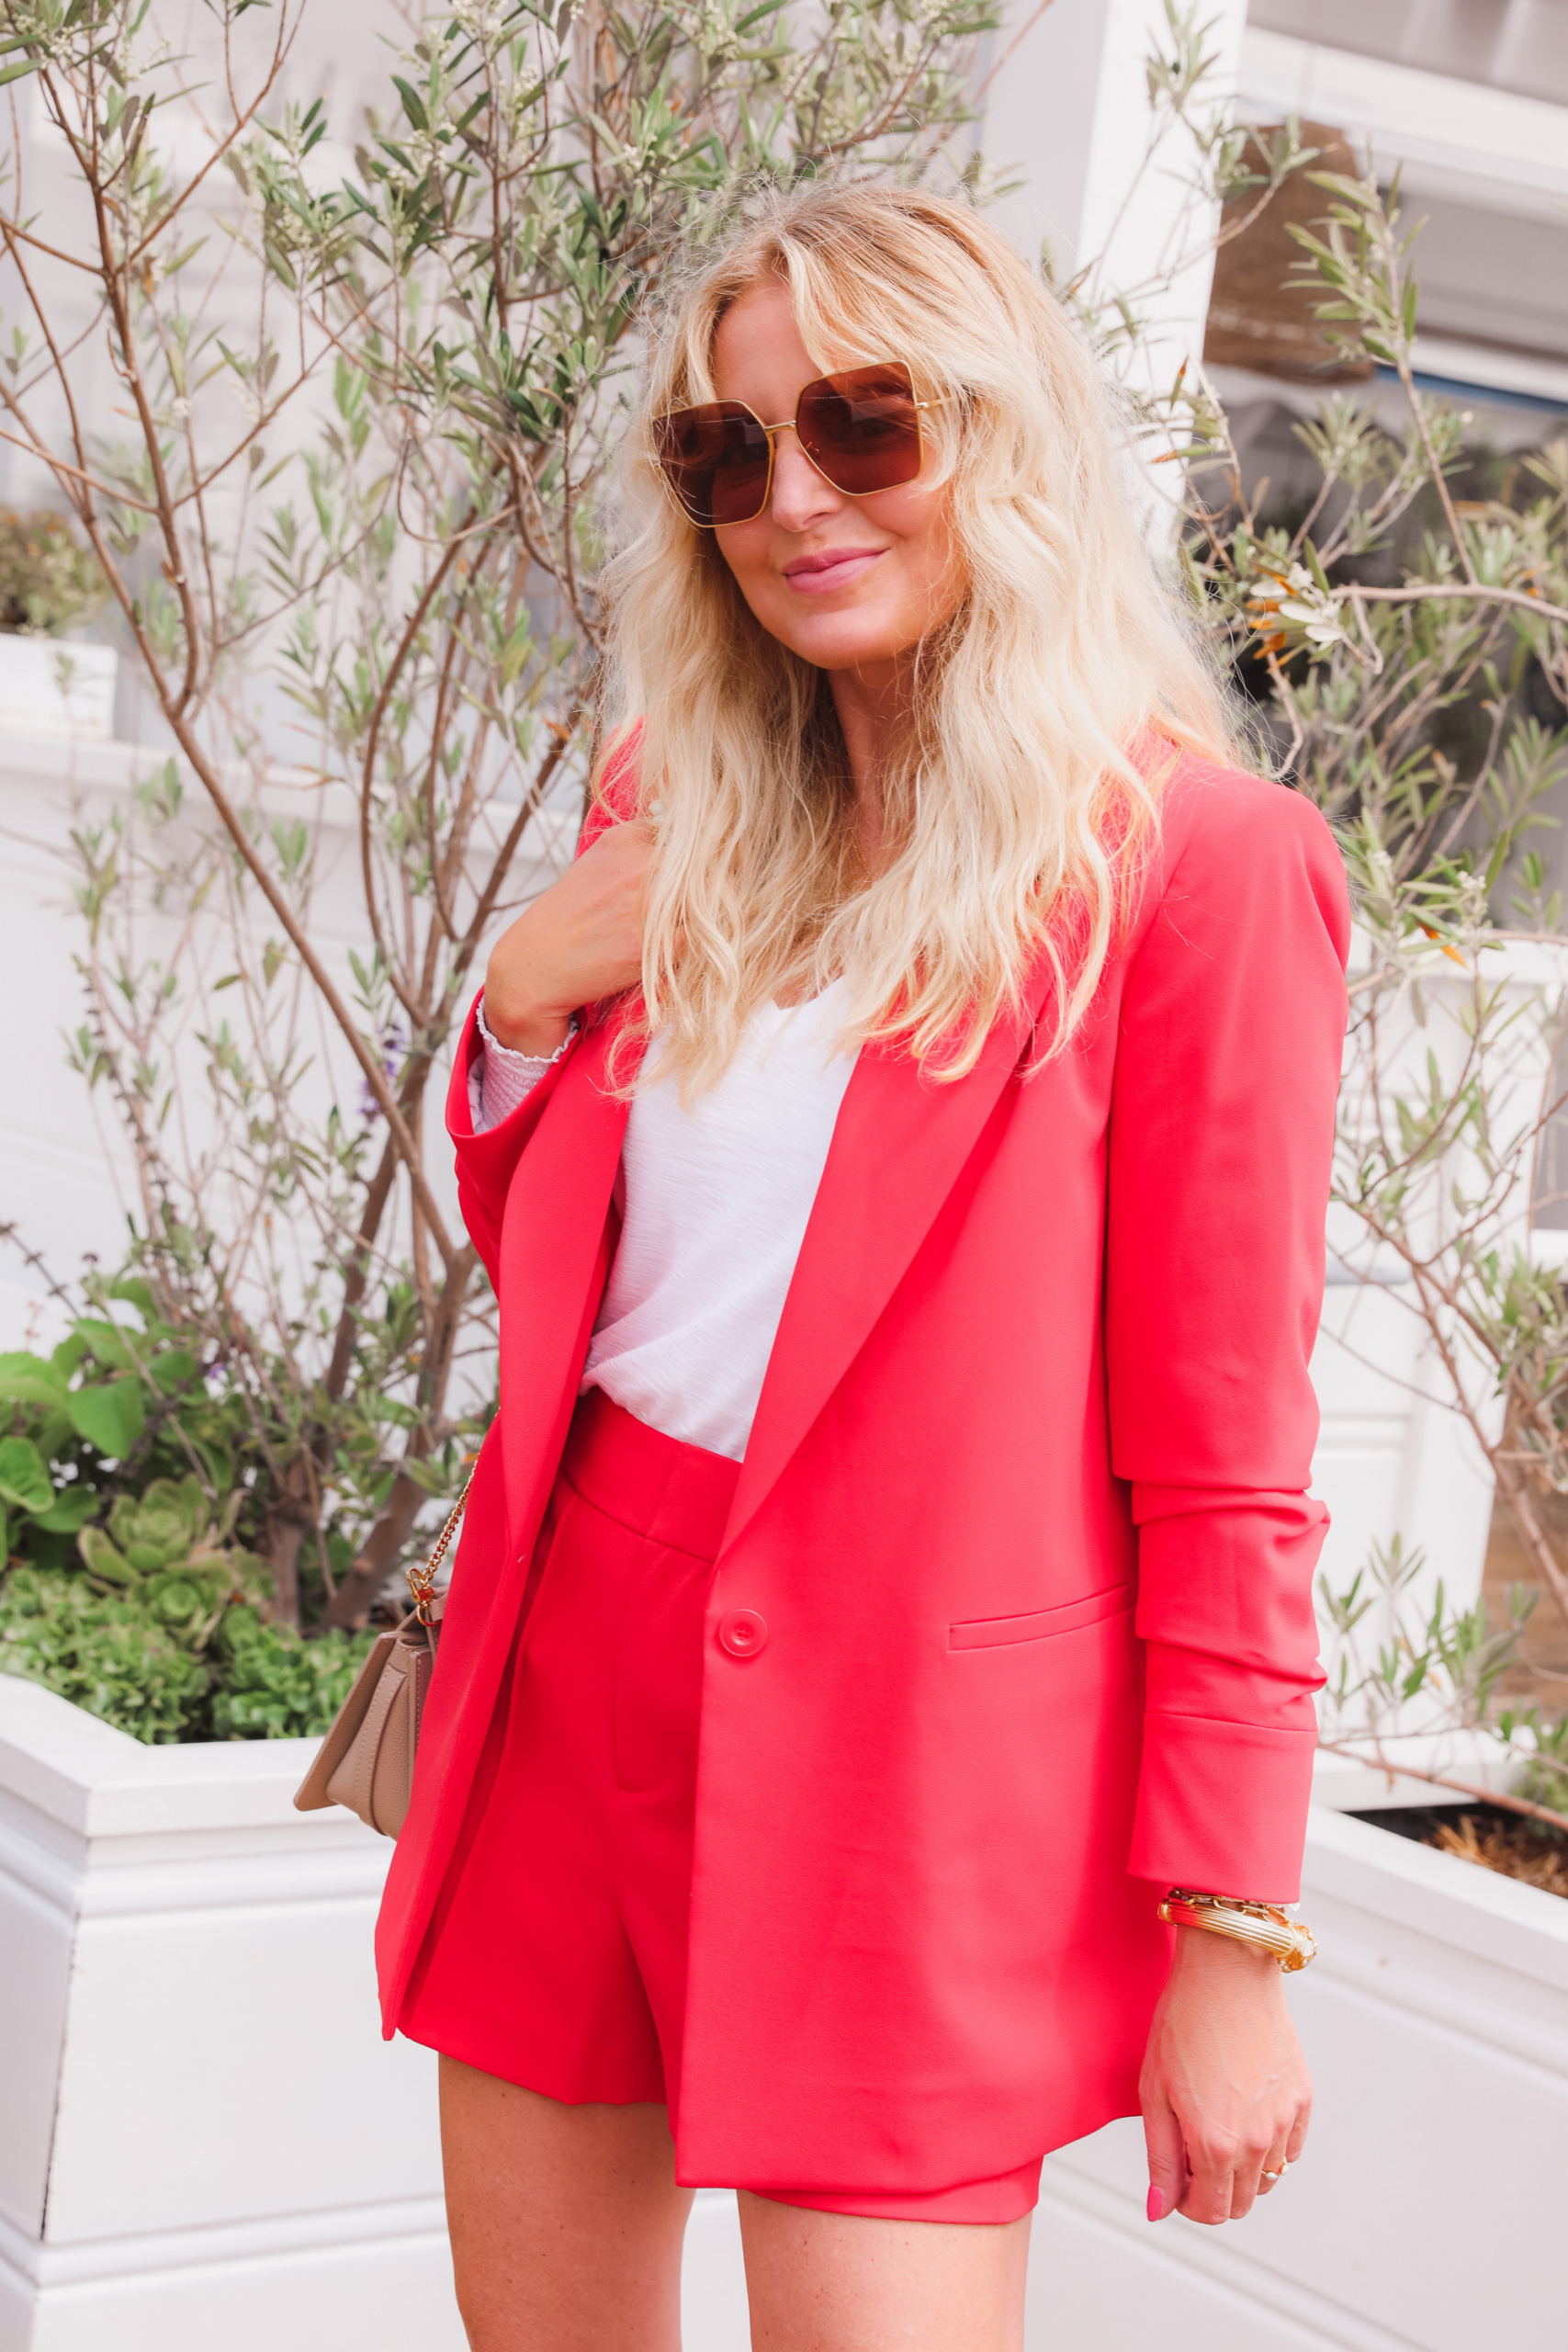 shorts suit in red by Alice + Olivia on fashion over 40 blogger Erin Busbee in Malibu California